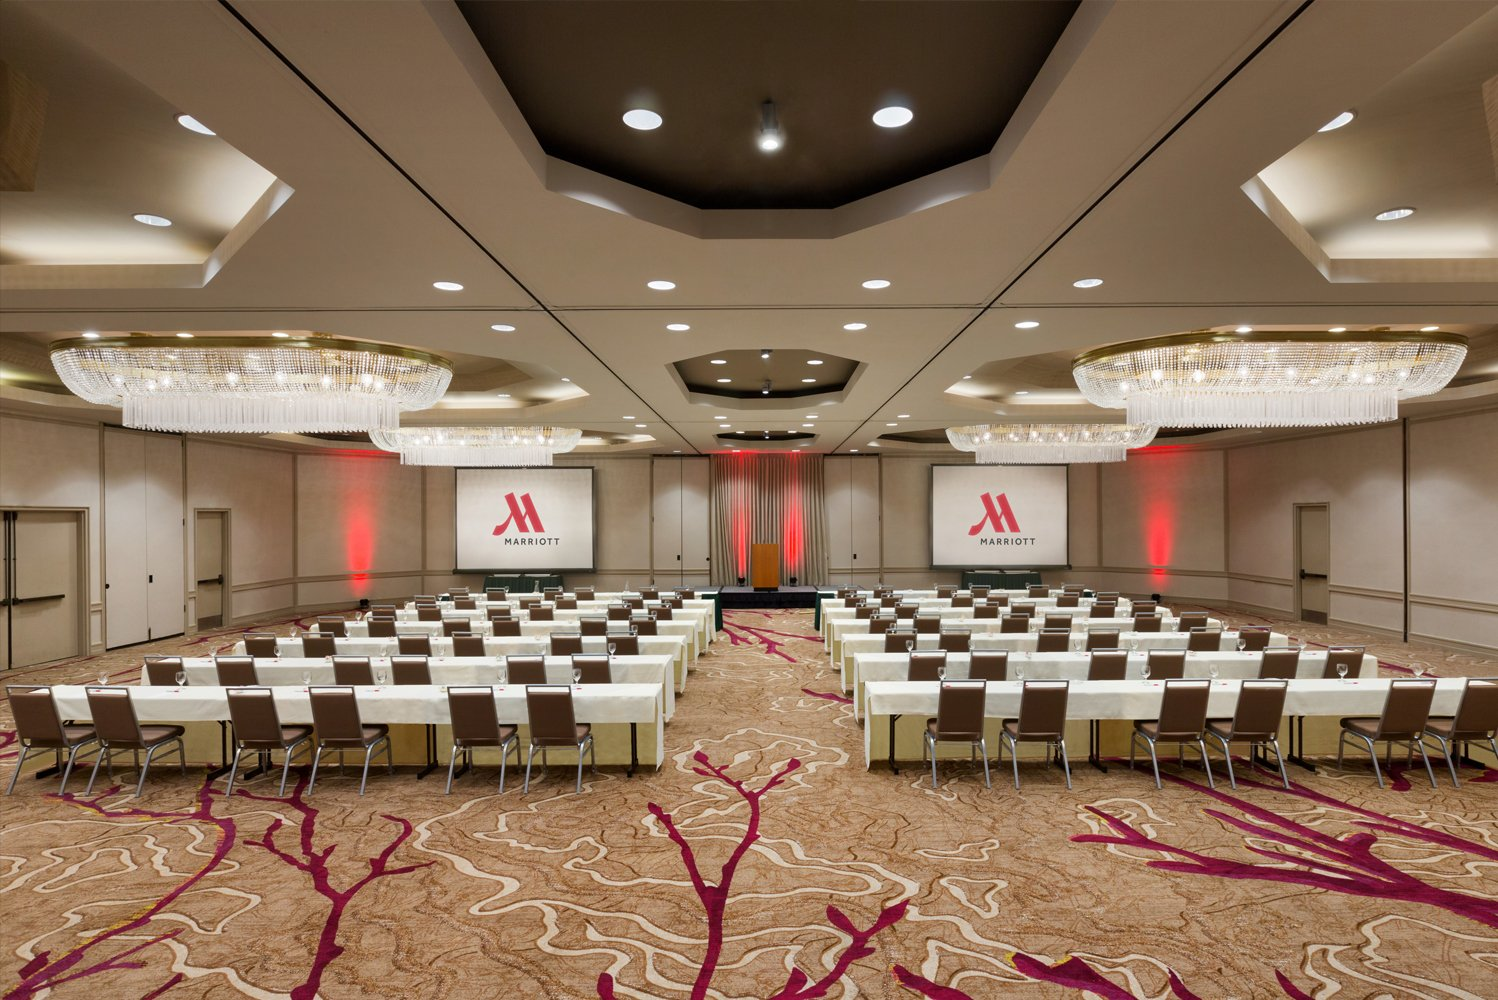 The Walnut Creek Marriott has over 19,700 square feet of meeting space.